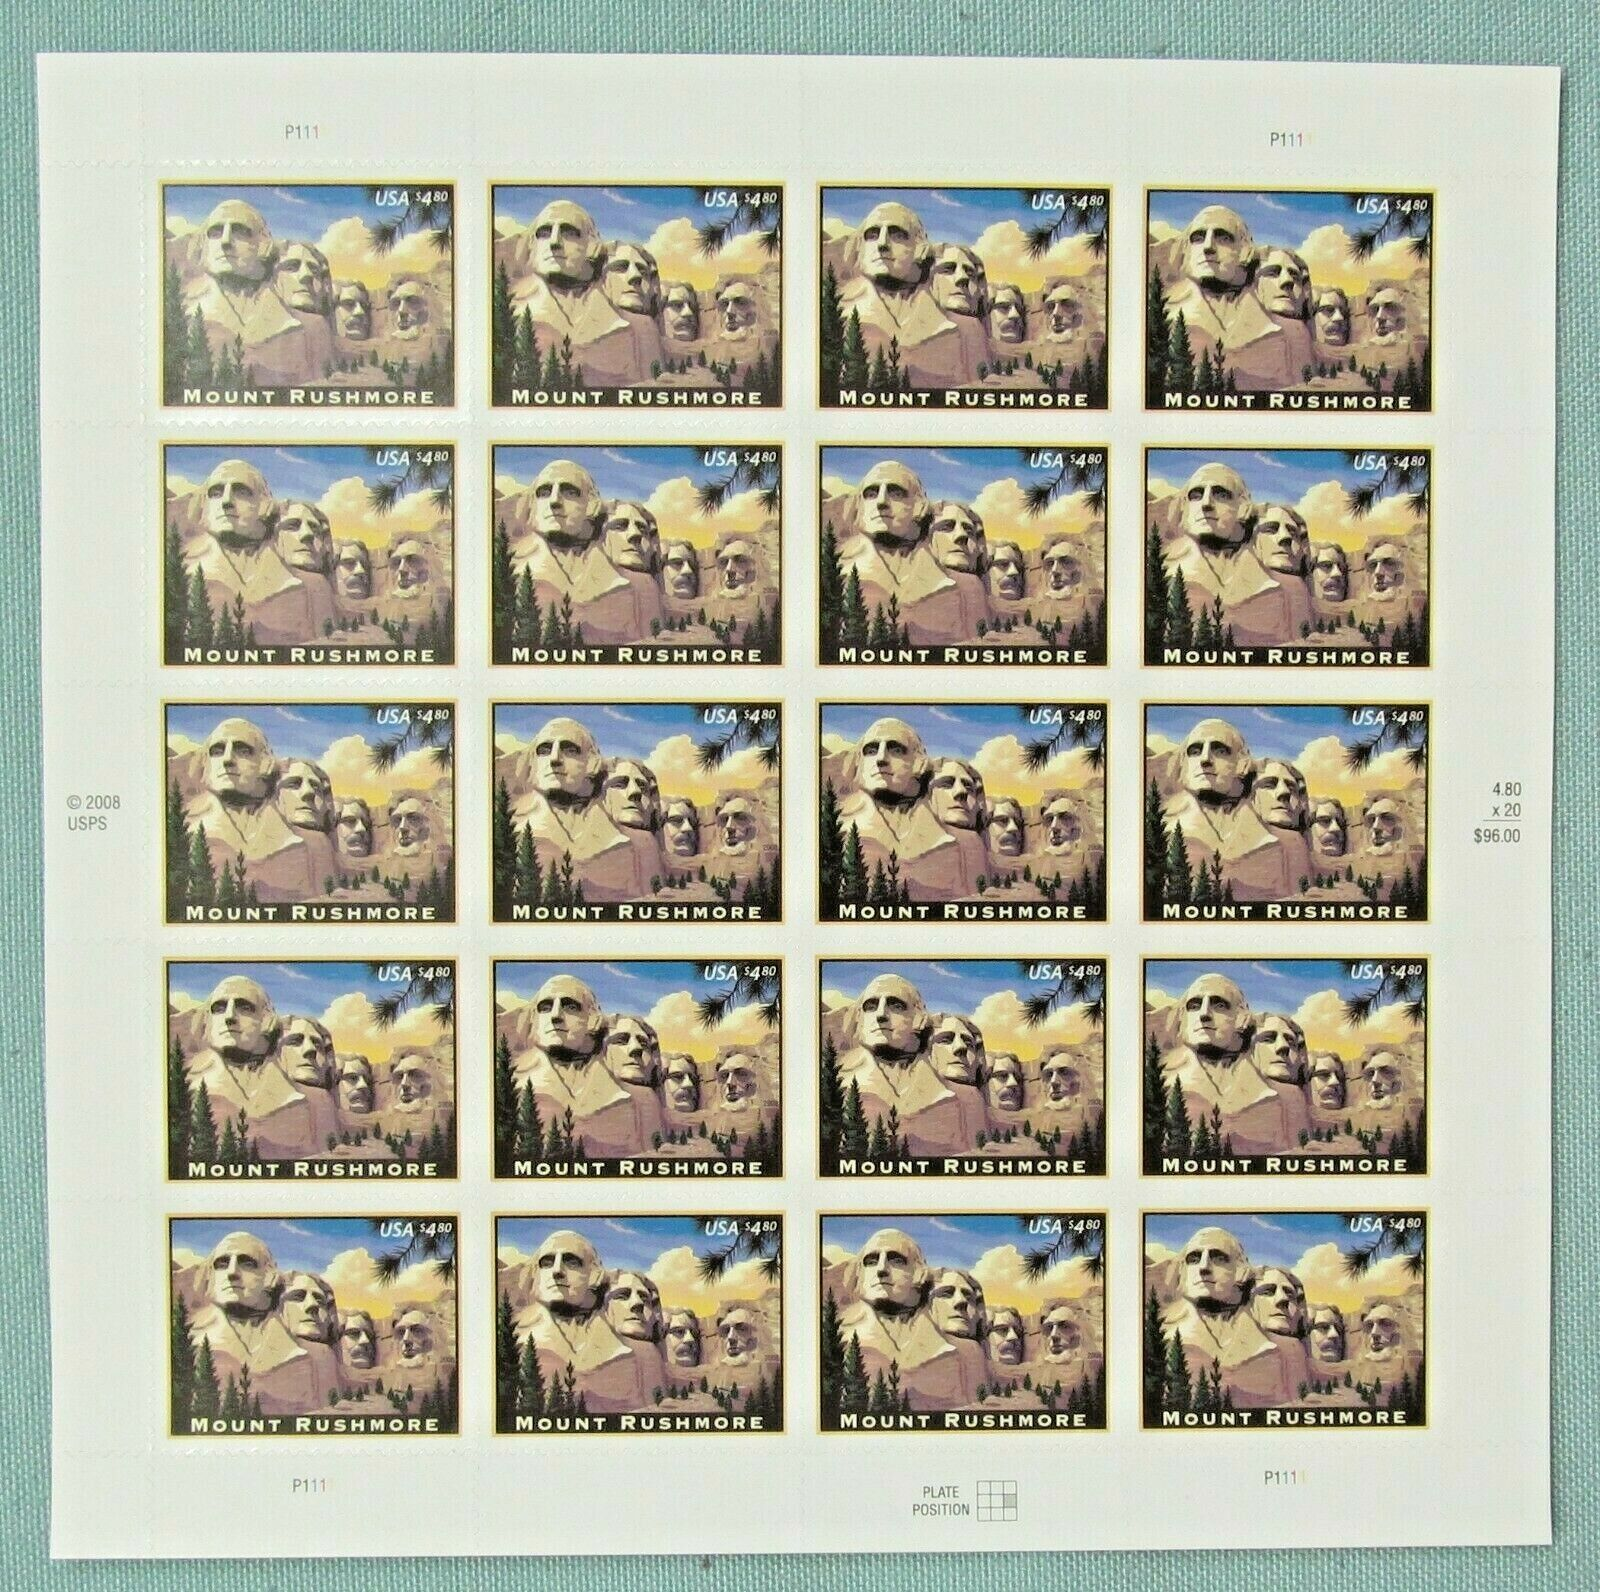 Купить New One (1) Sheet of 20 of MOUNT RUSHMORE $4.80 US PS Postage Stamps. Scott 4268